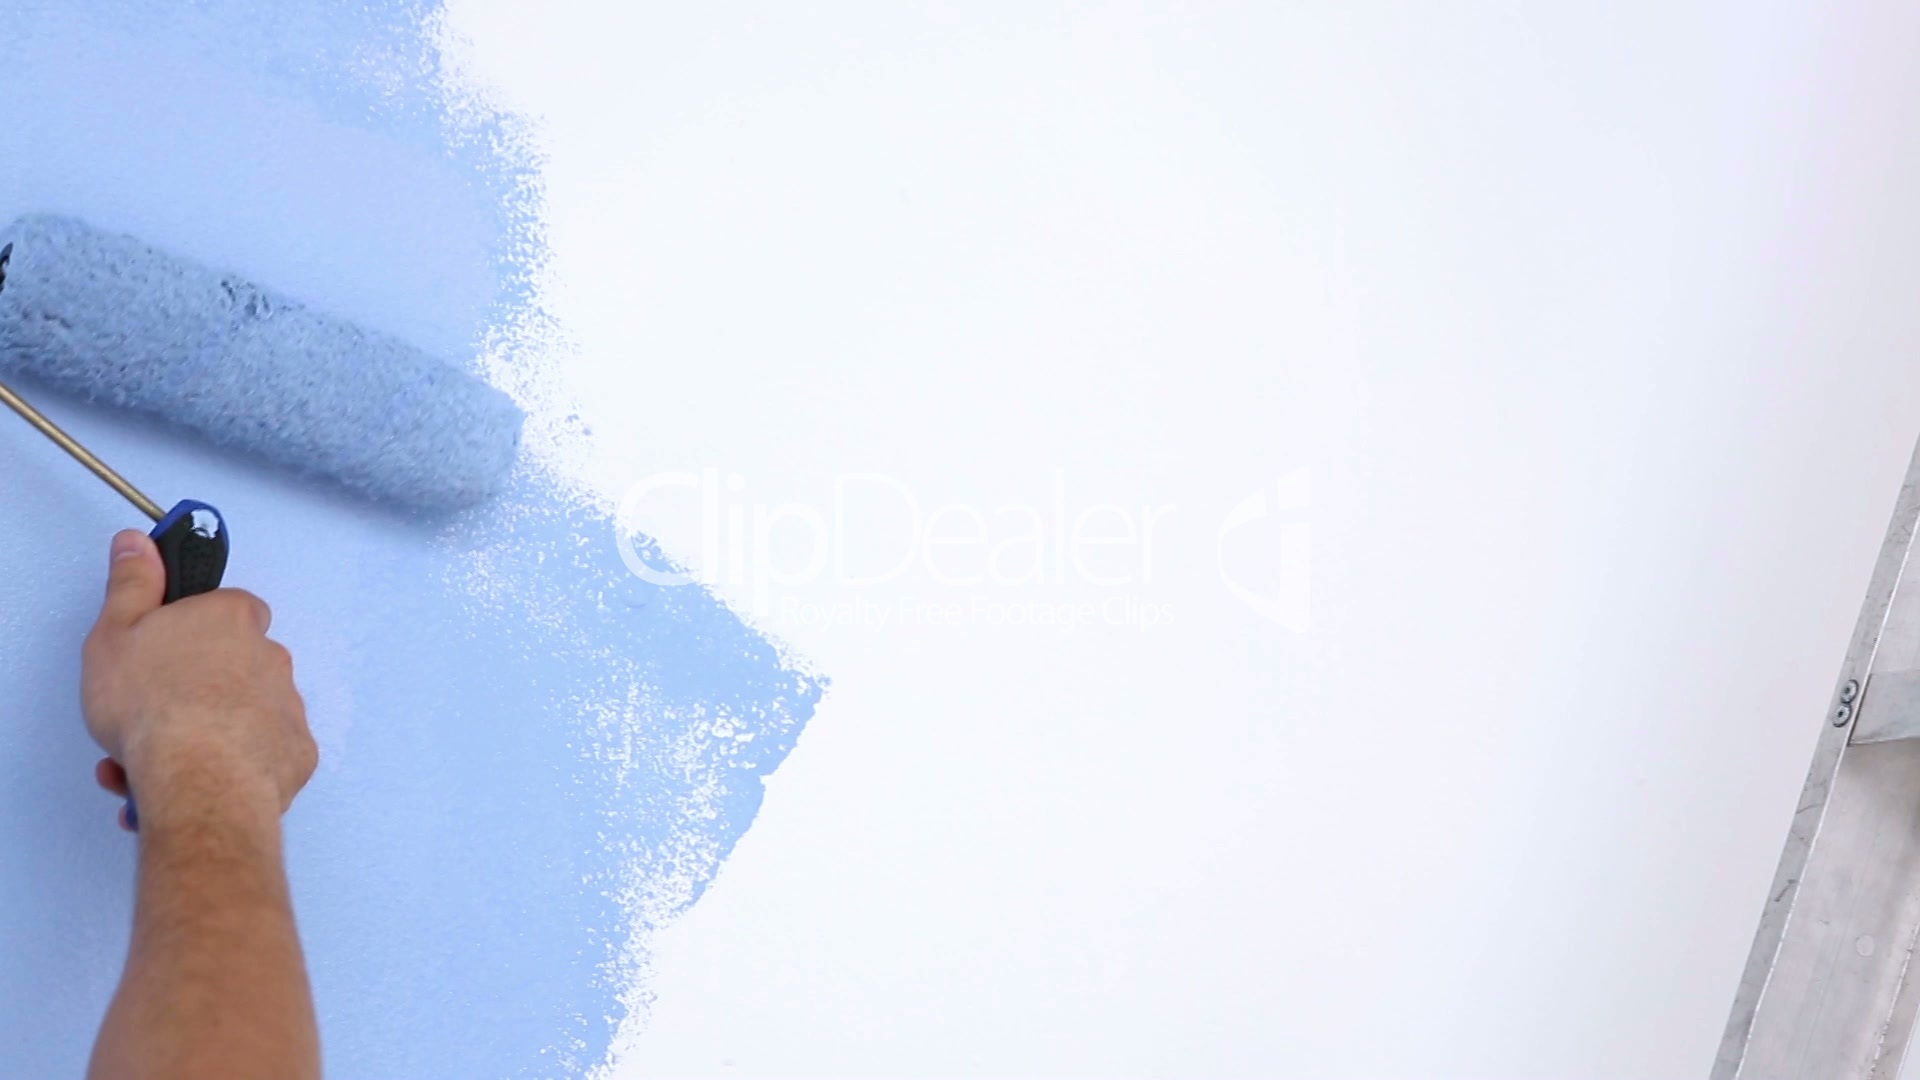 painting a wallMan painting a wall in blue Royaltyfree video and stock footage